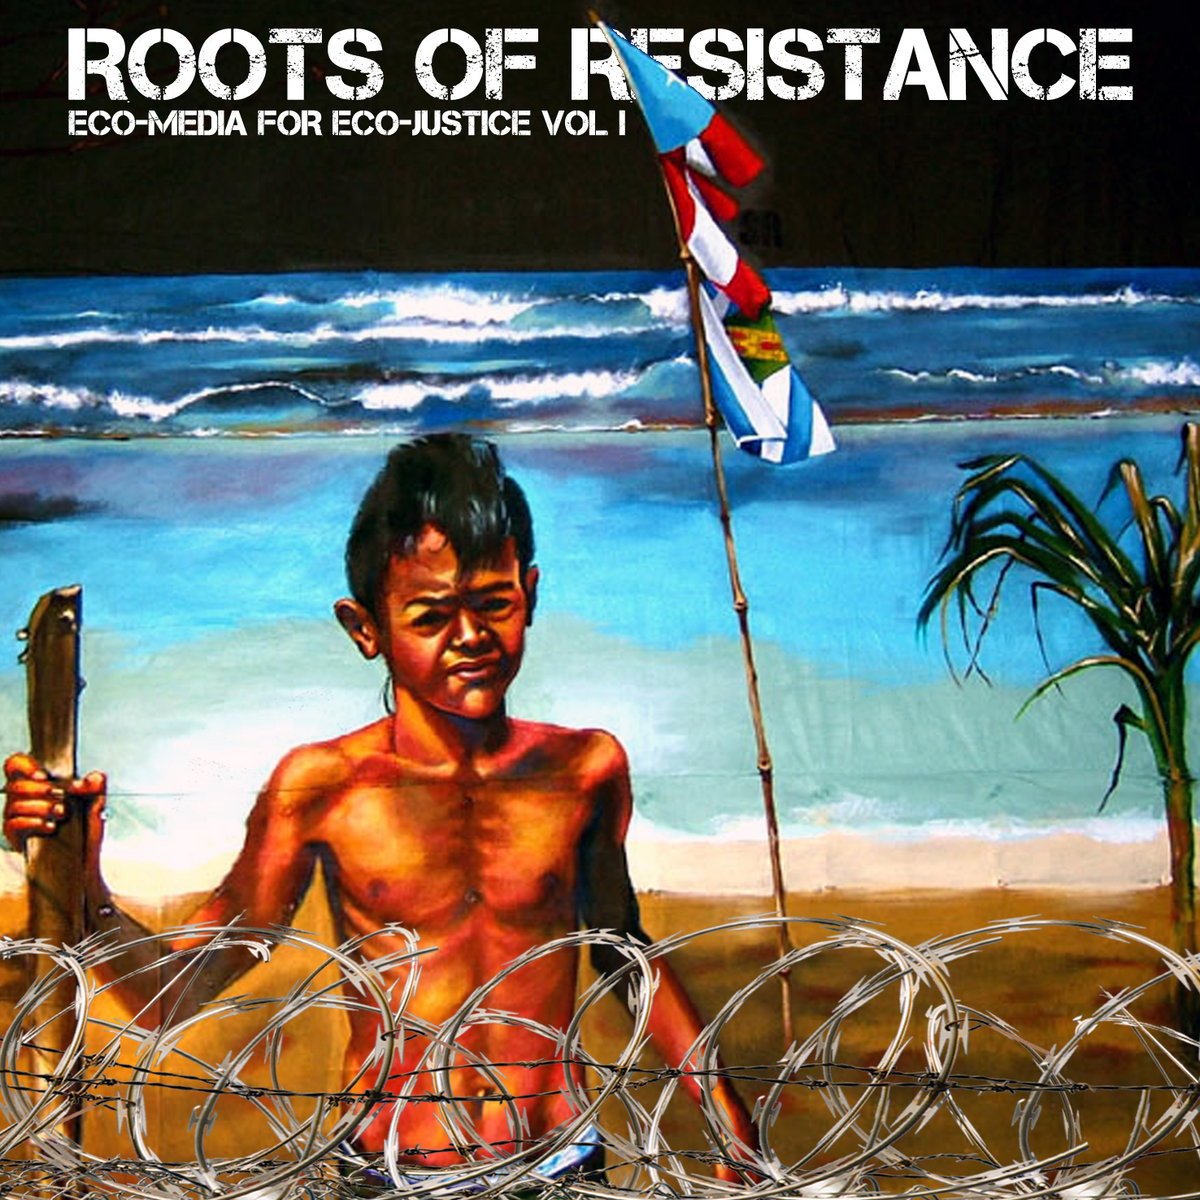 roots of resistance Summary the little-known stories of black men and women, fugitive slaves in the mid-1800's, who traveled escape routes known as the underground railroad.